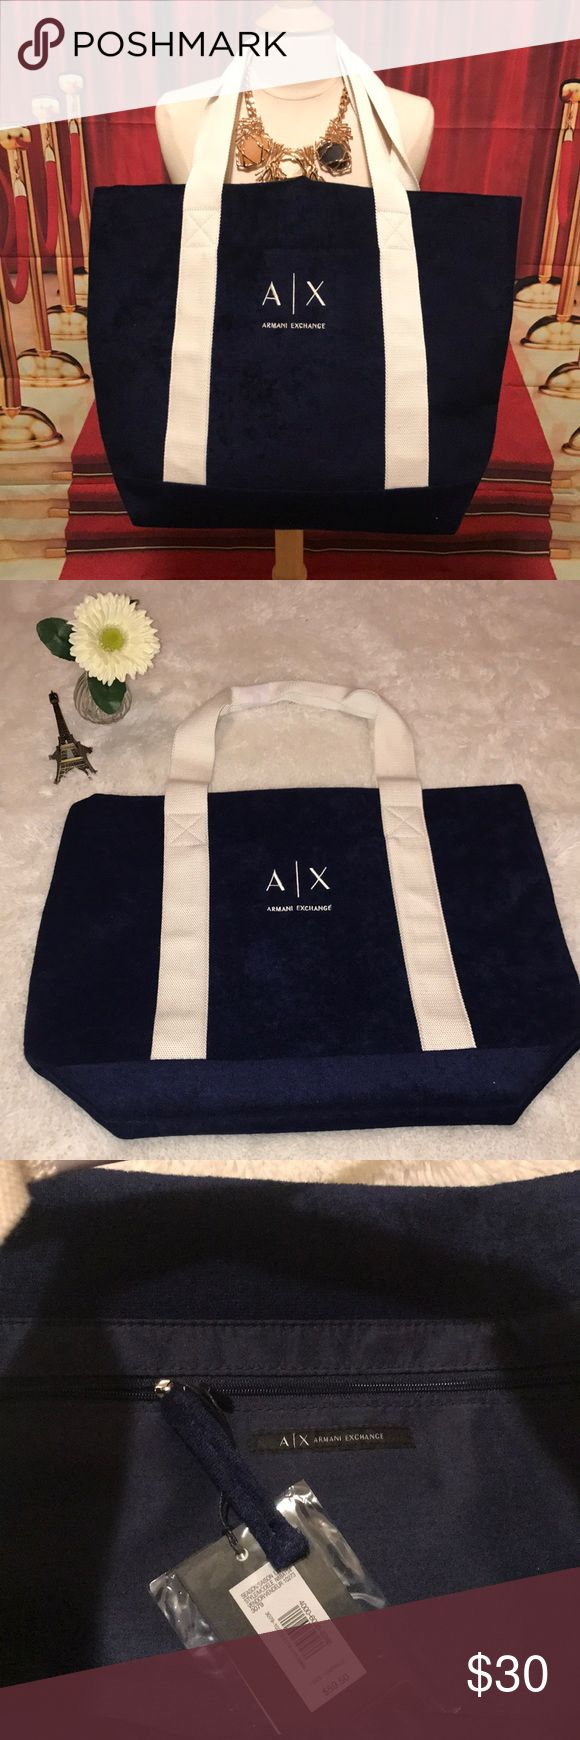 Armani Exchange Tote 👜Bag Brand New Tote Bag  Navy blue with white handles  100% polyester A/X Armani Exchange Bags Totes